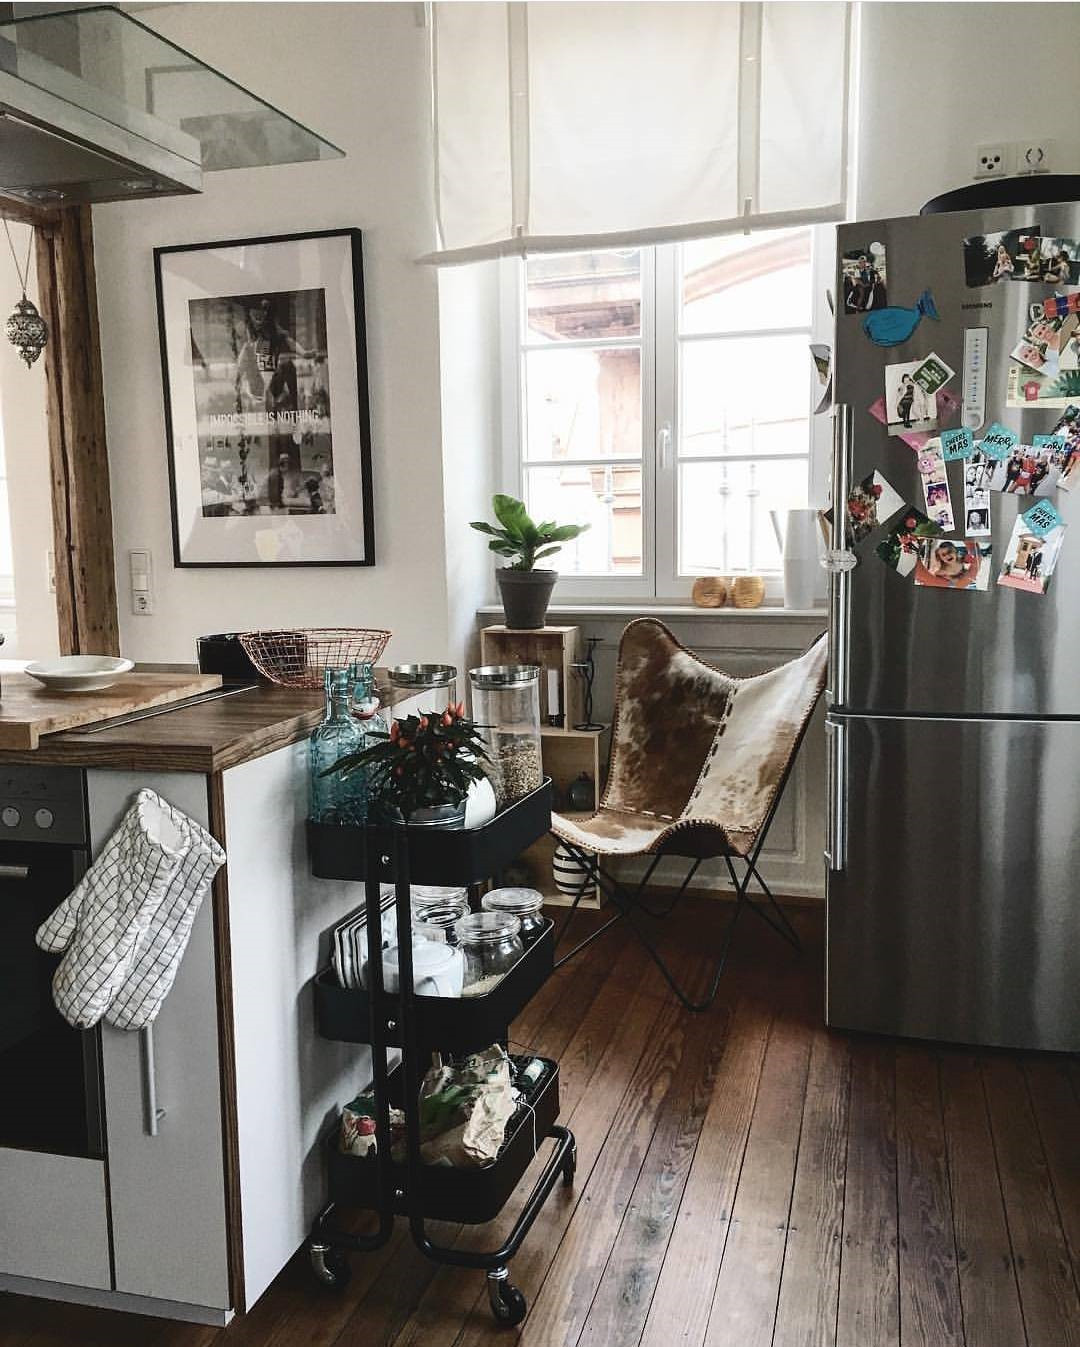 56 of the Very Best Ideas and Solutions for Your Small Kitchen